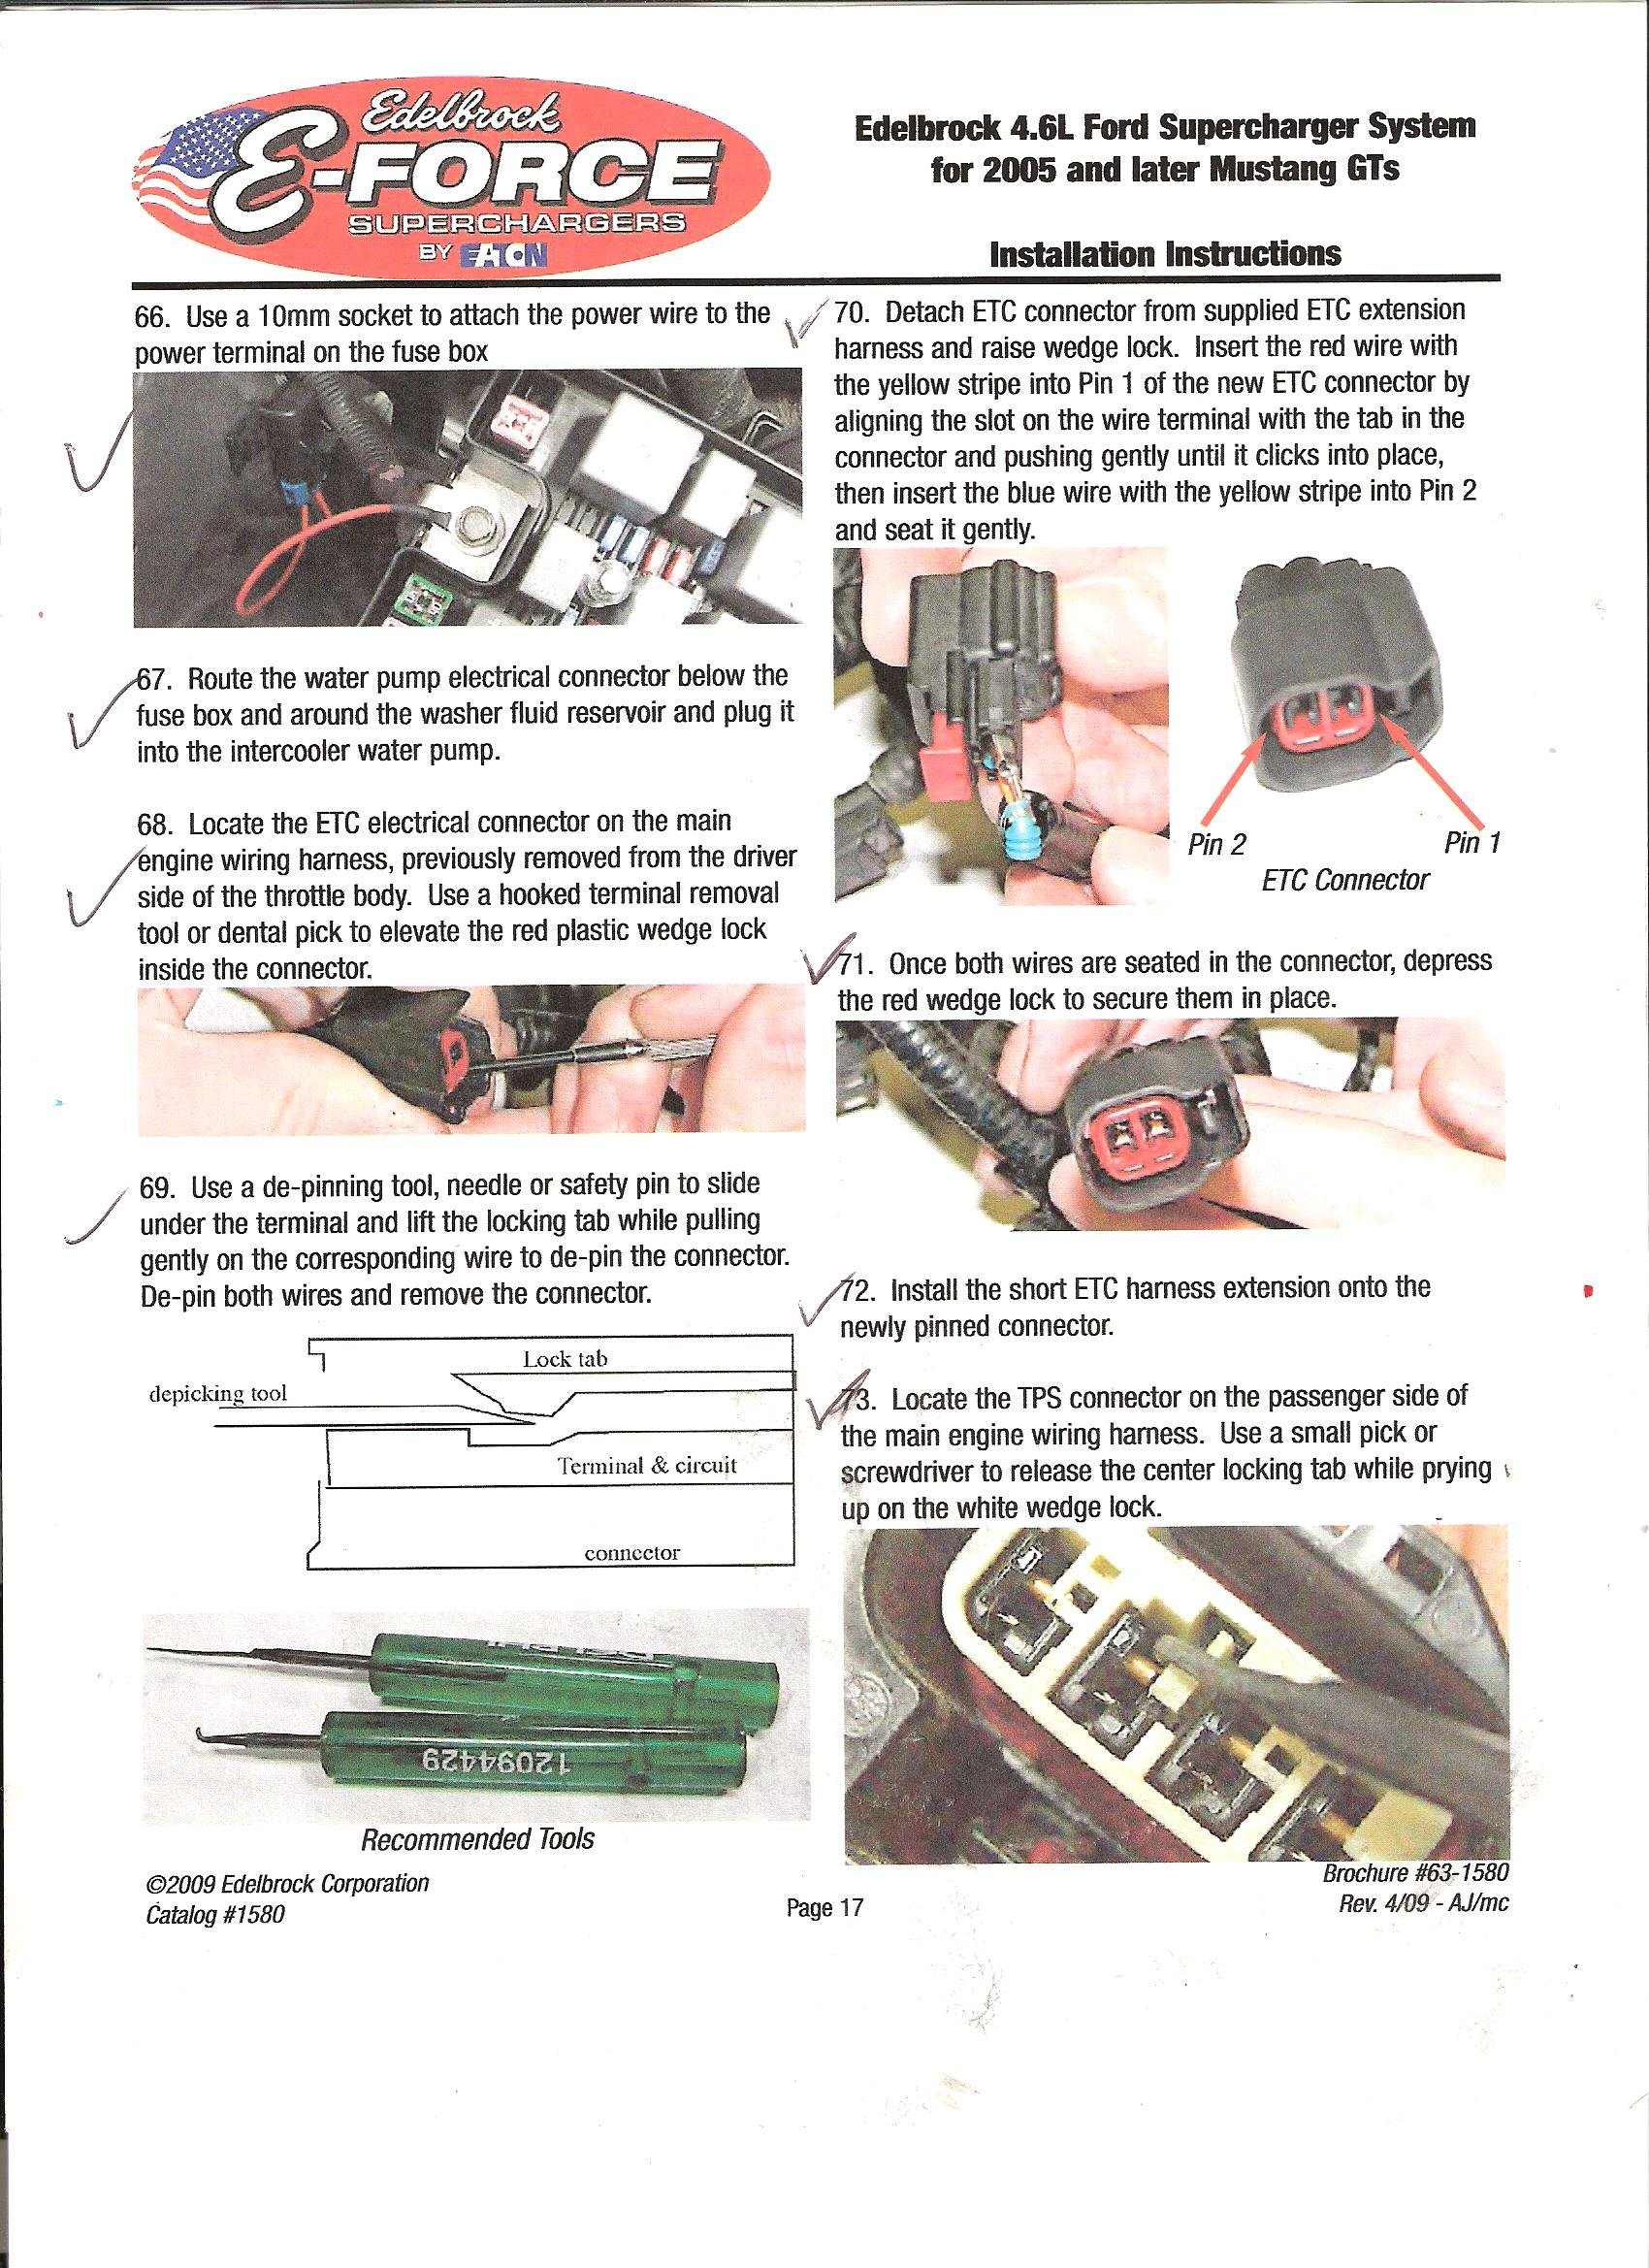 Wiring 0 5v Boost Signal To Aeroforce Ford Mustang Forum Locking Fuse Box Click Image For Larger Version Name Page 17 001 Views 395 Size